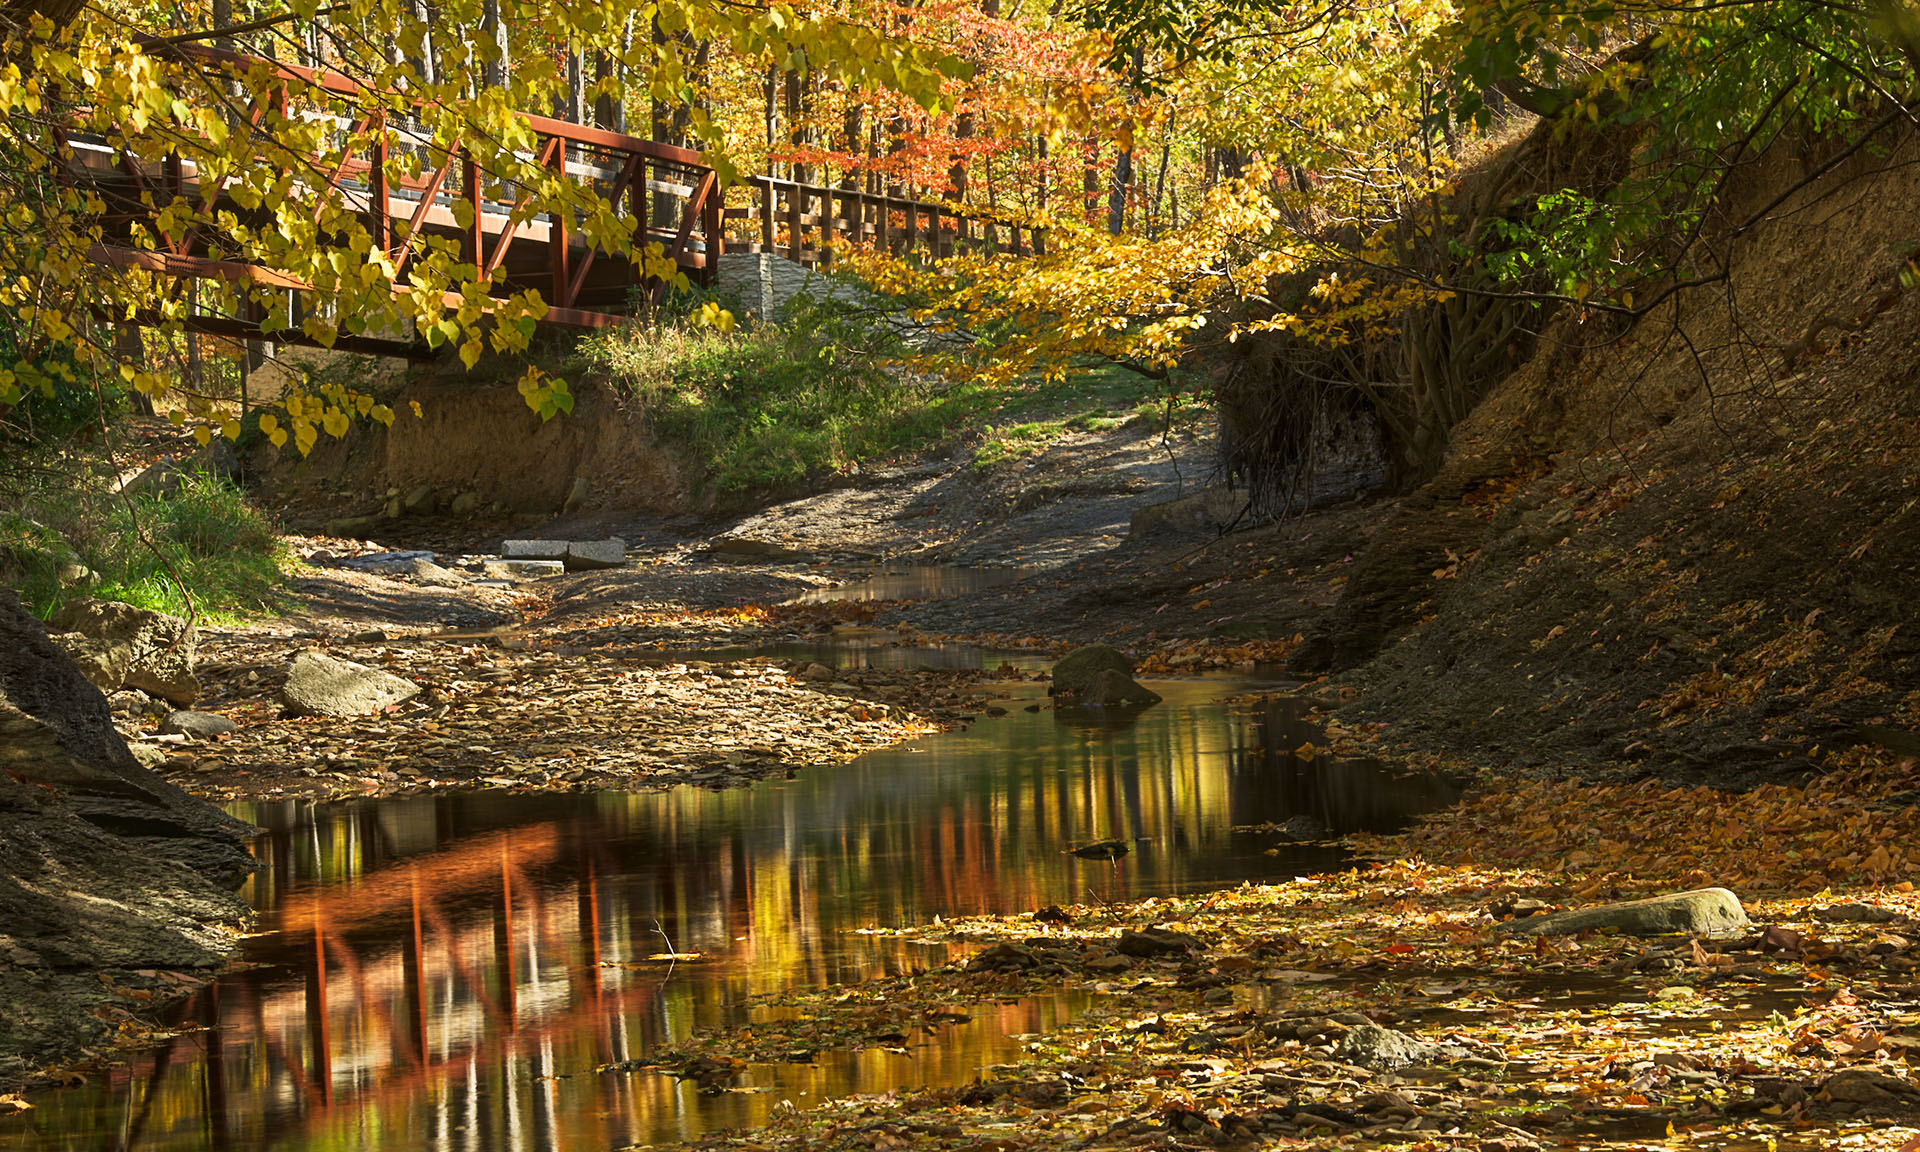 West Creek in the Fall